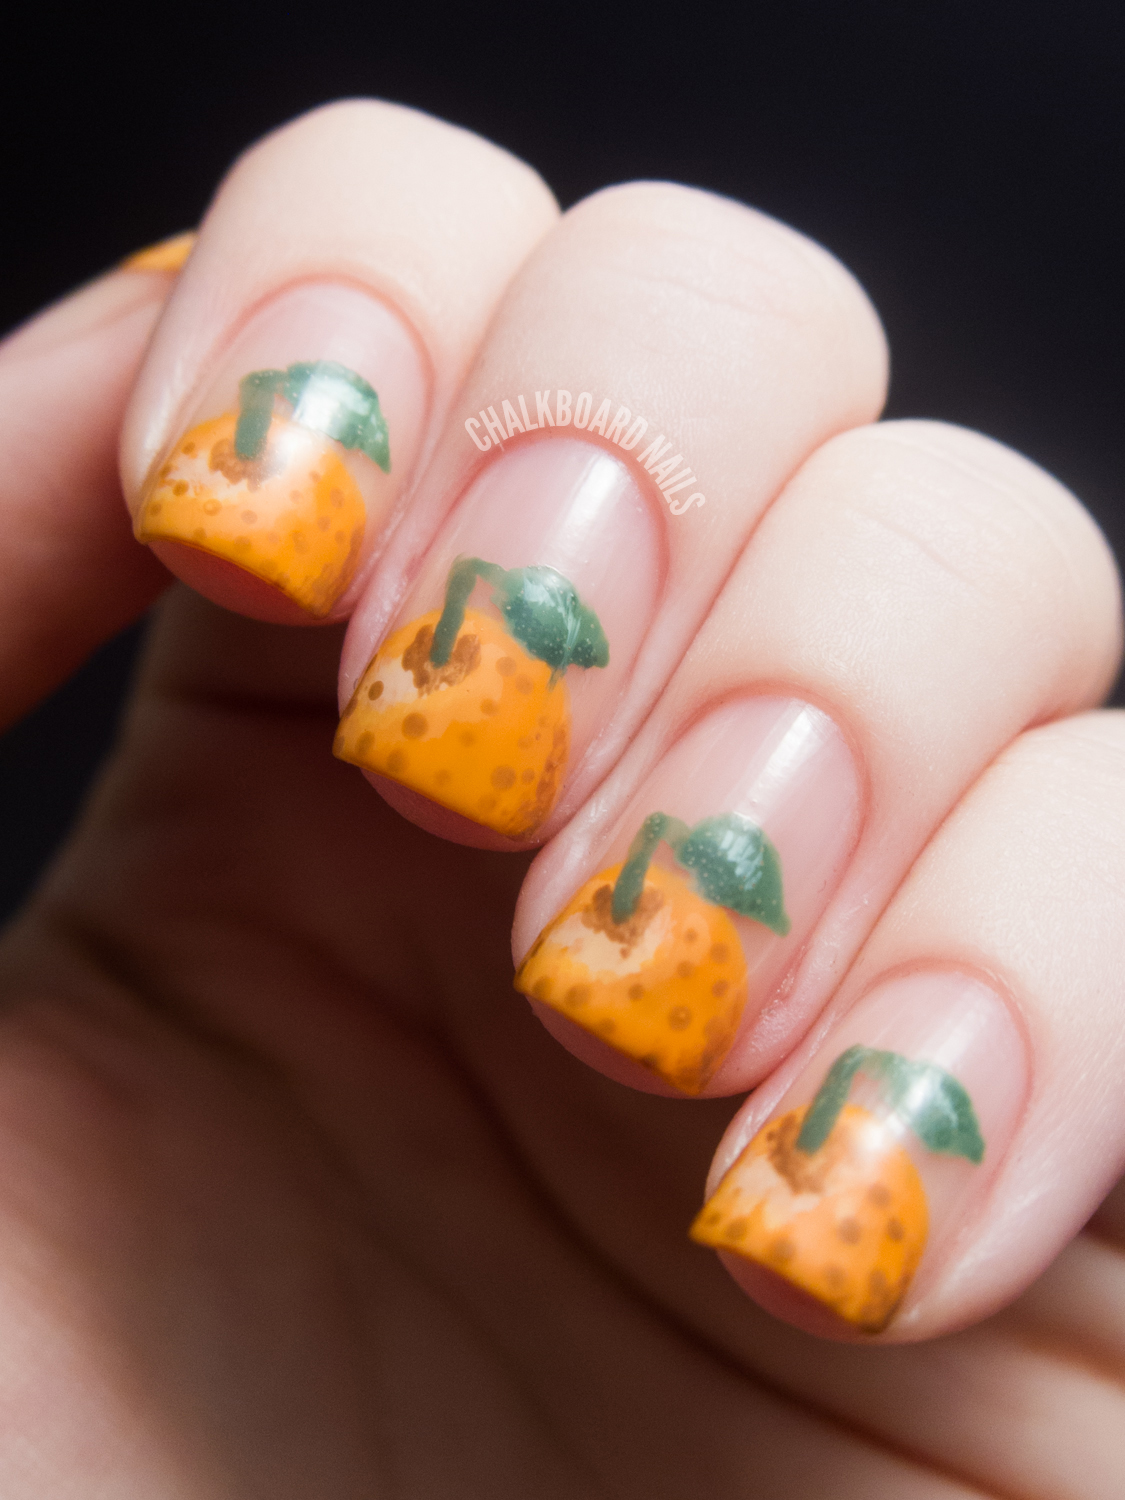 31dc2012 Day 10 Gradient Nails: 31DC2012: Day 02, Orange Nails